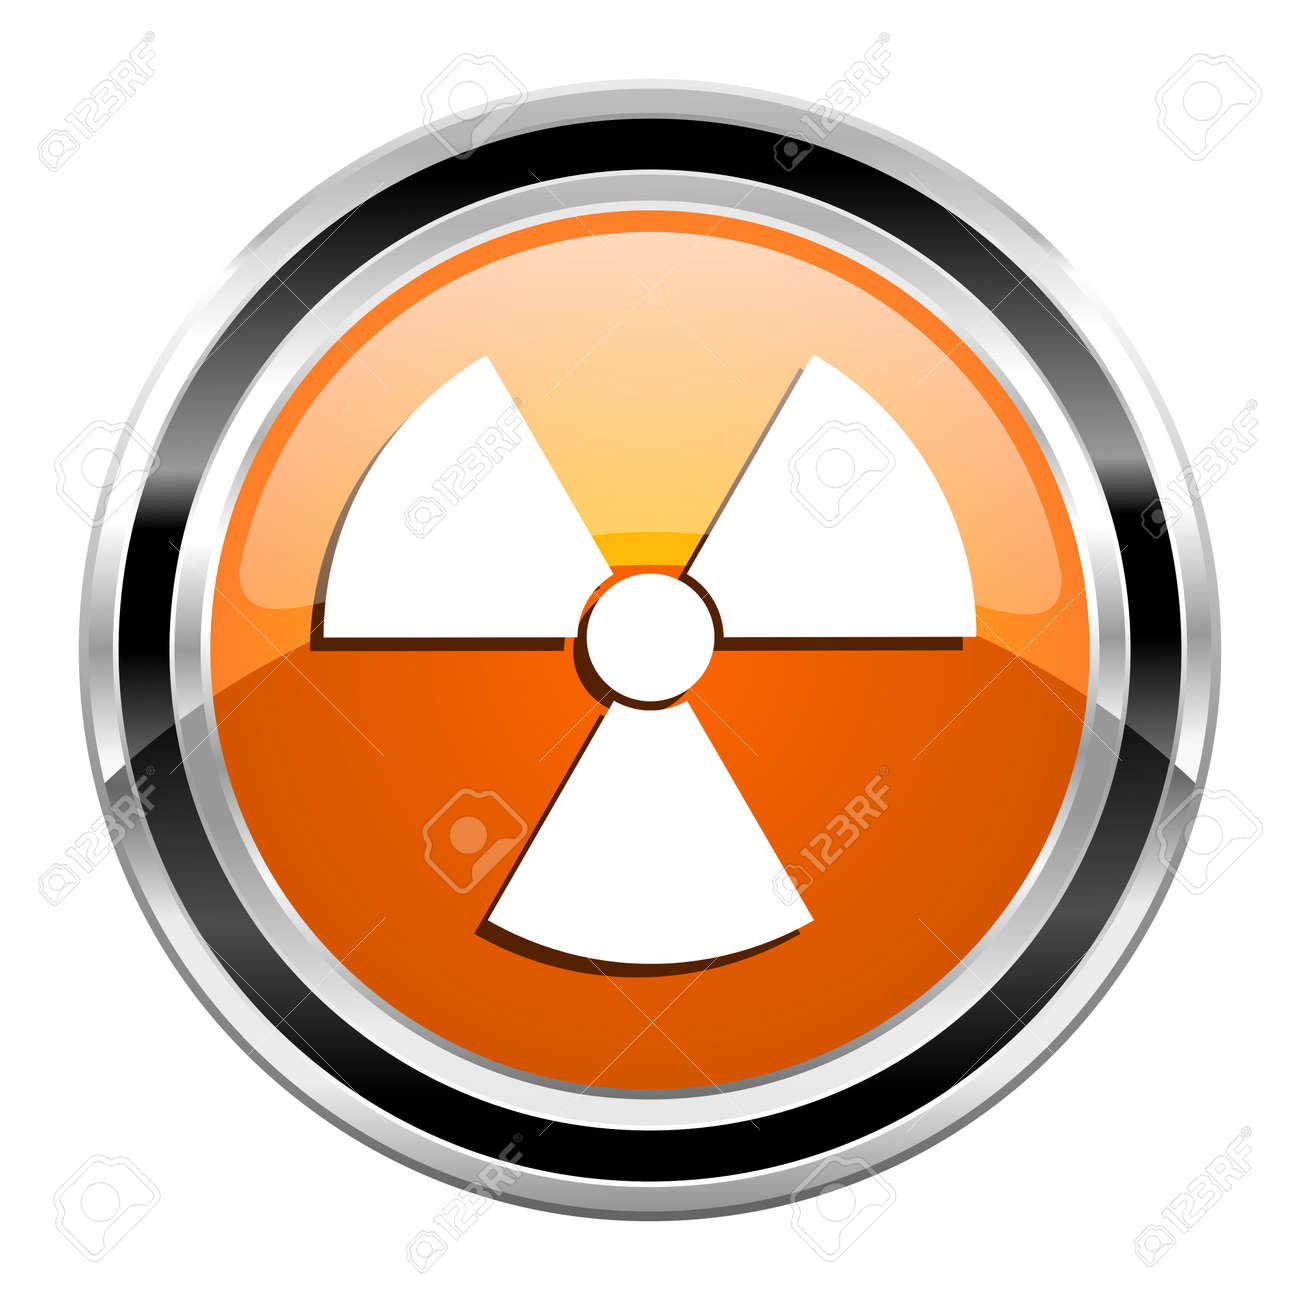 radiation icon Stock Photo - 21861160